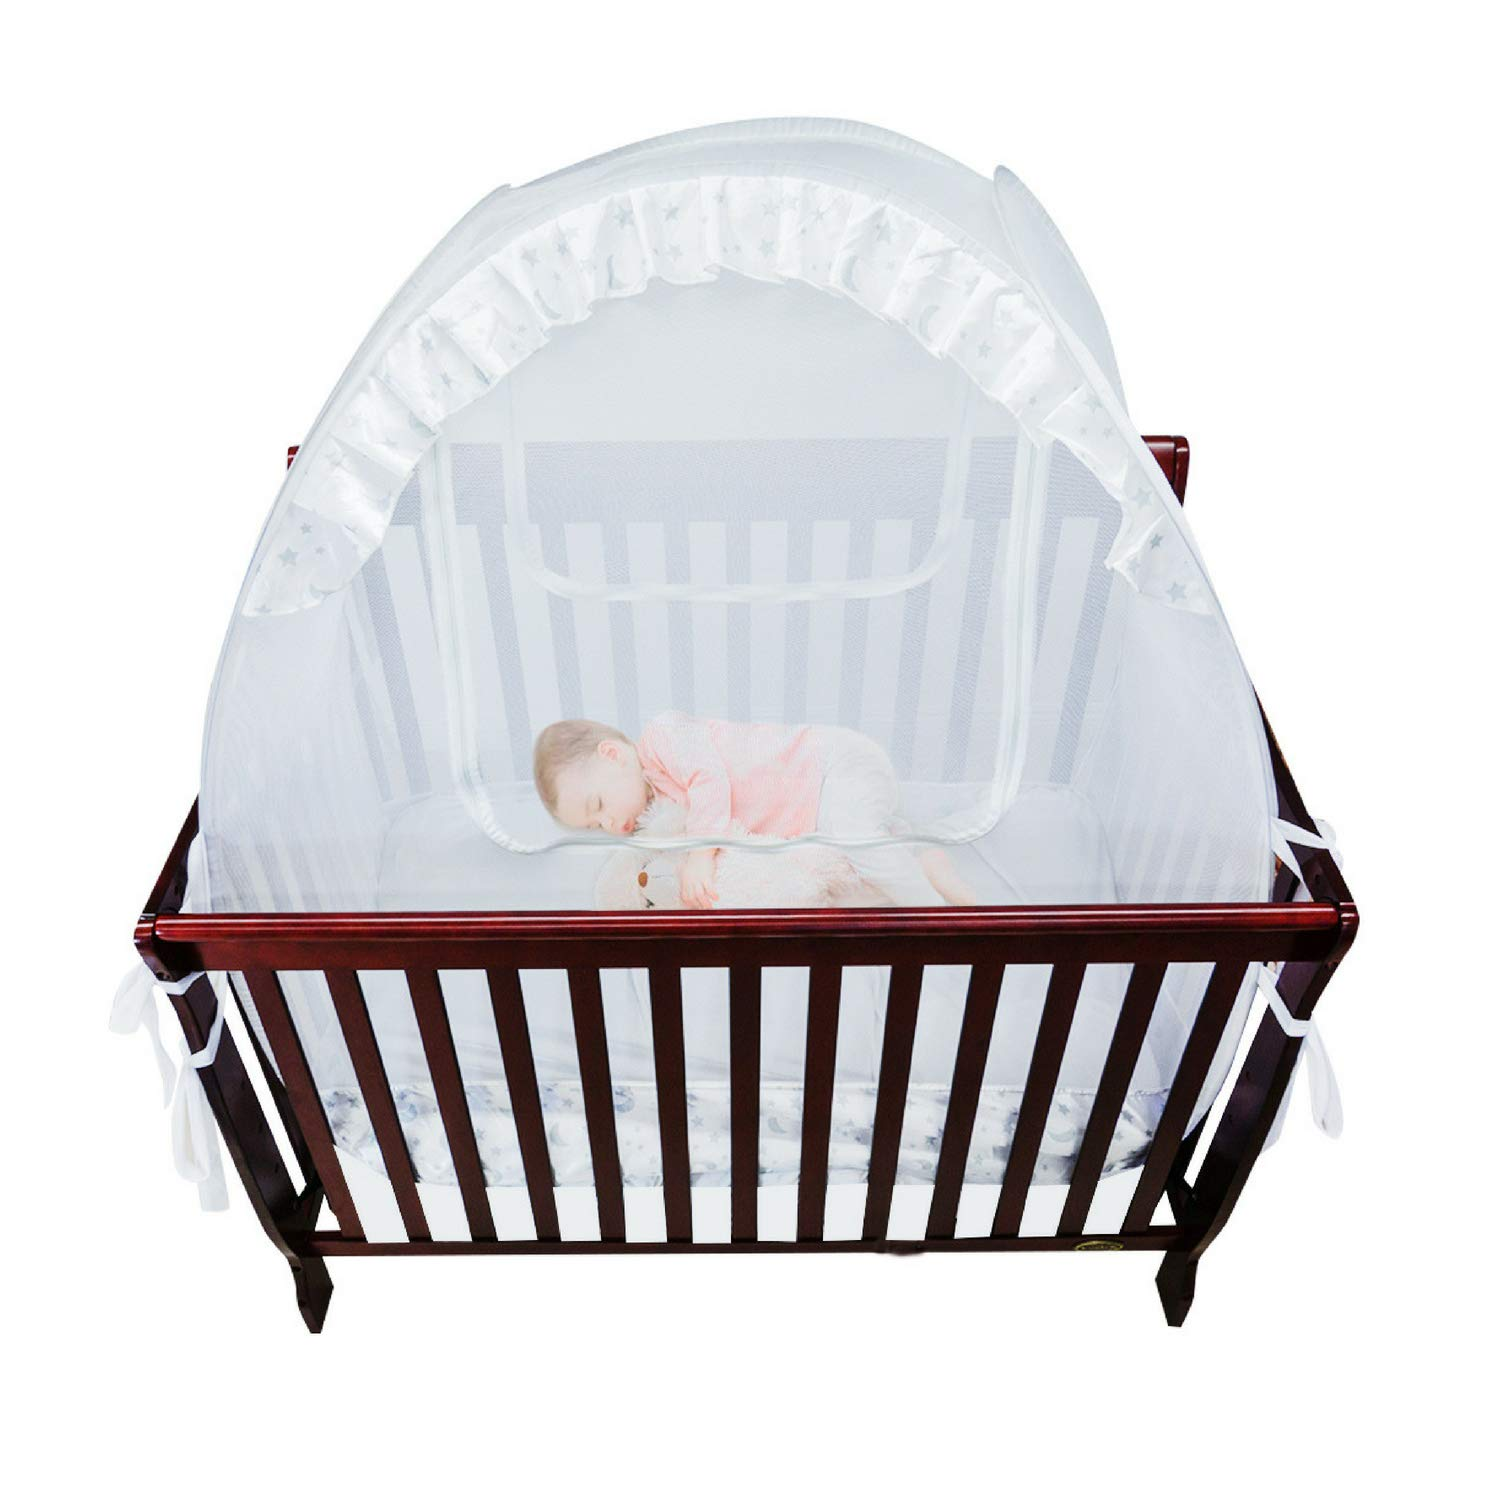 Houseables Baby Crib Safety Net, Mosquito Bed Netting Tent for Babies, White, 48